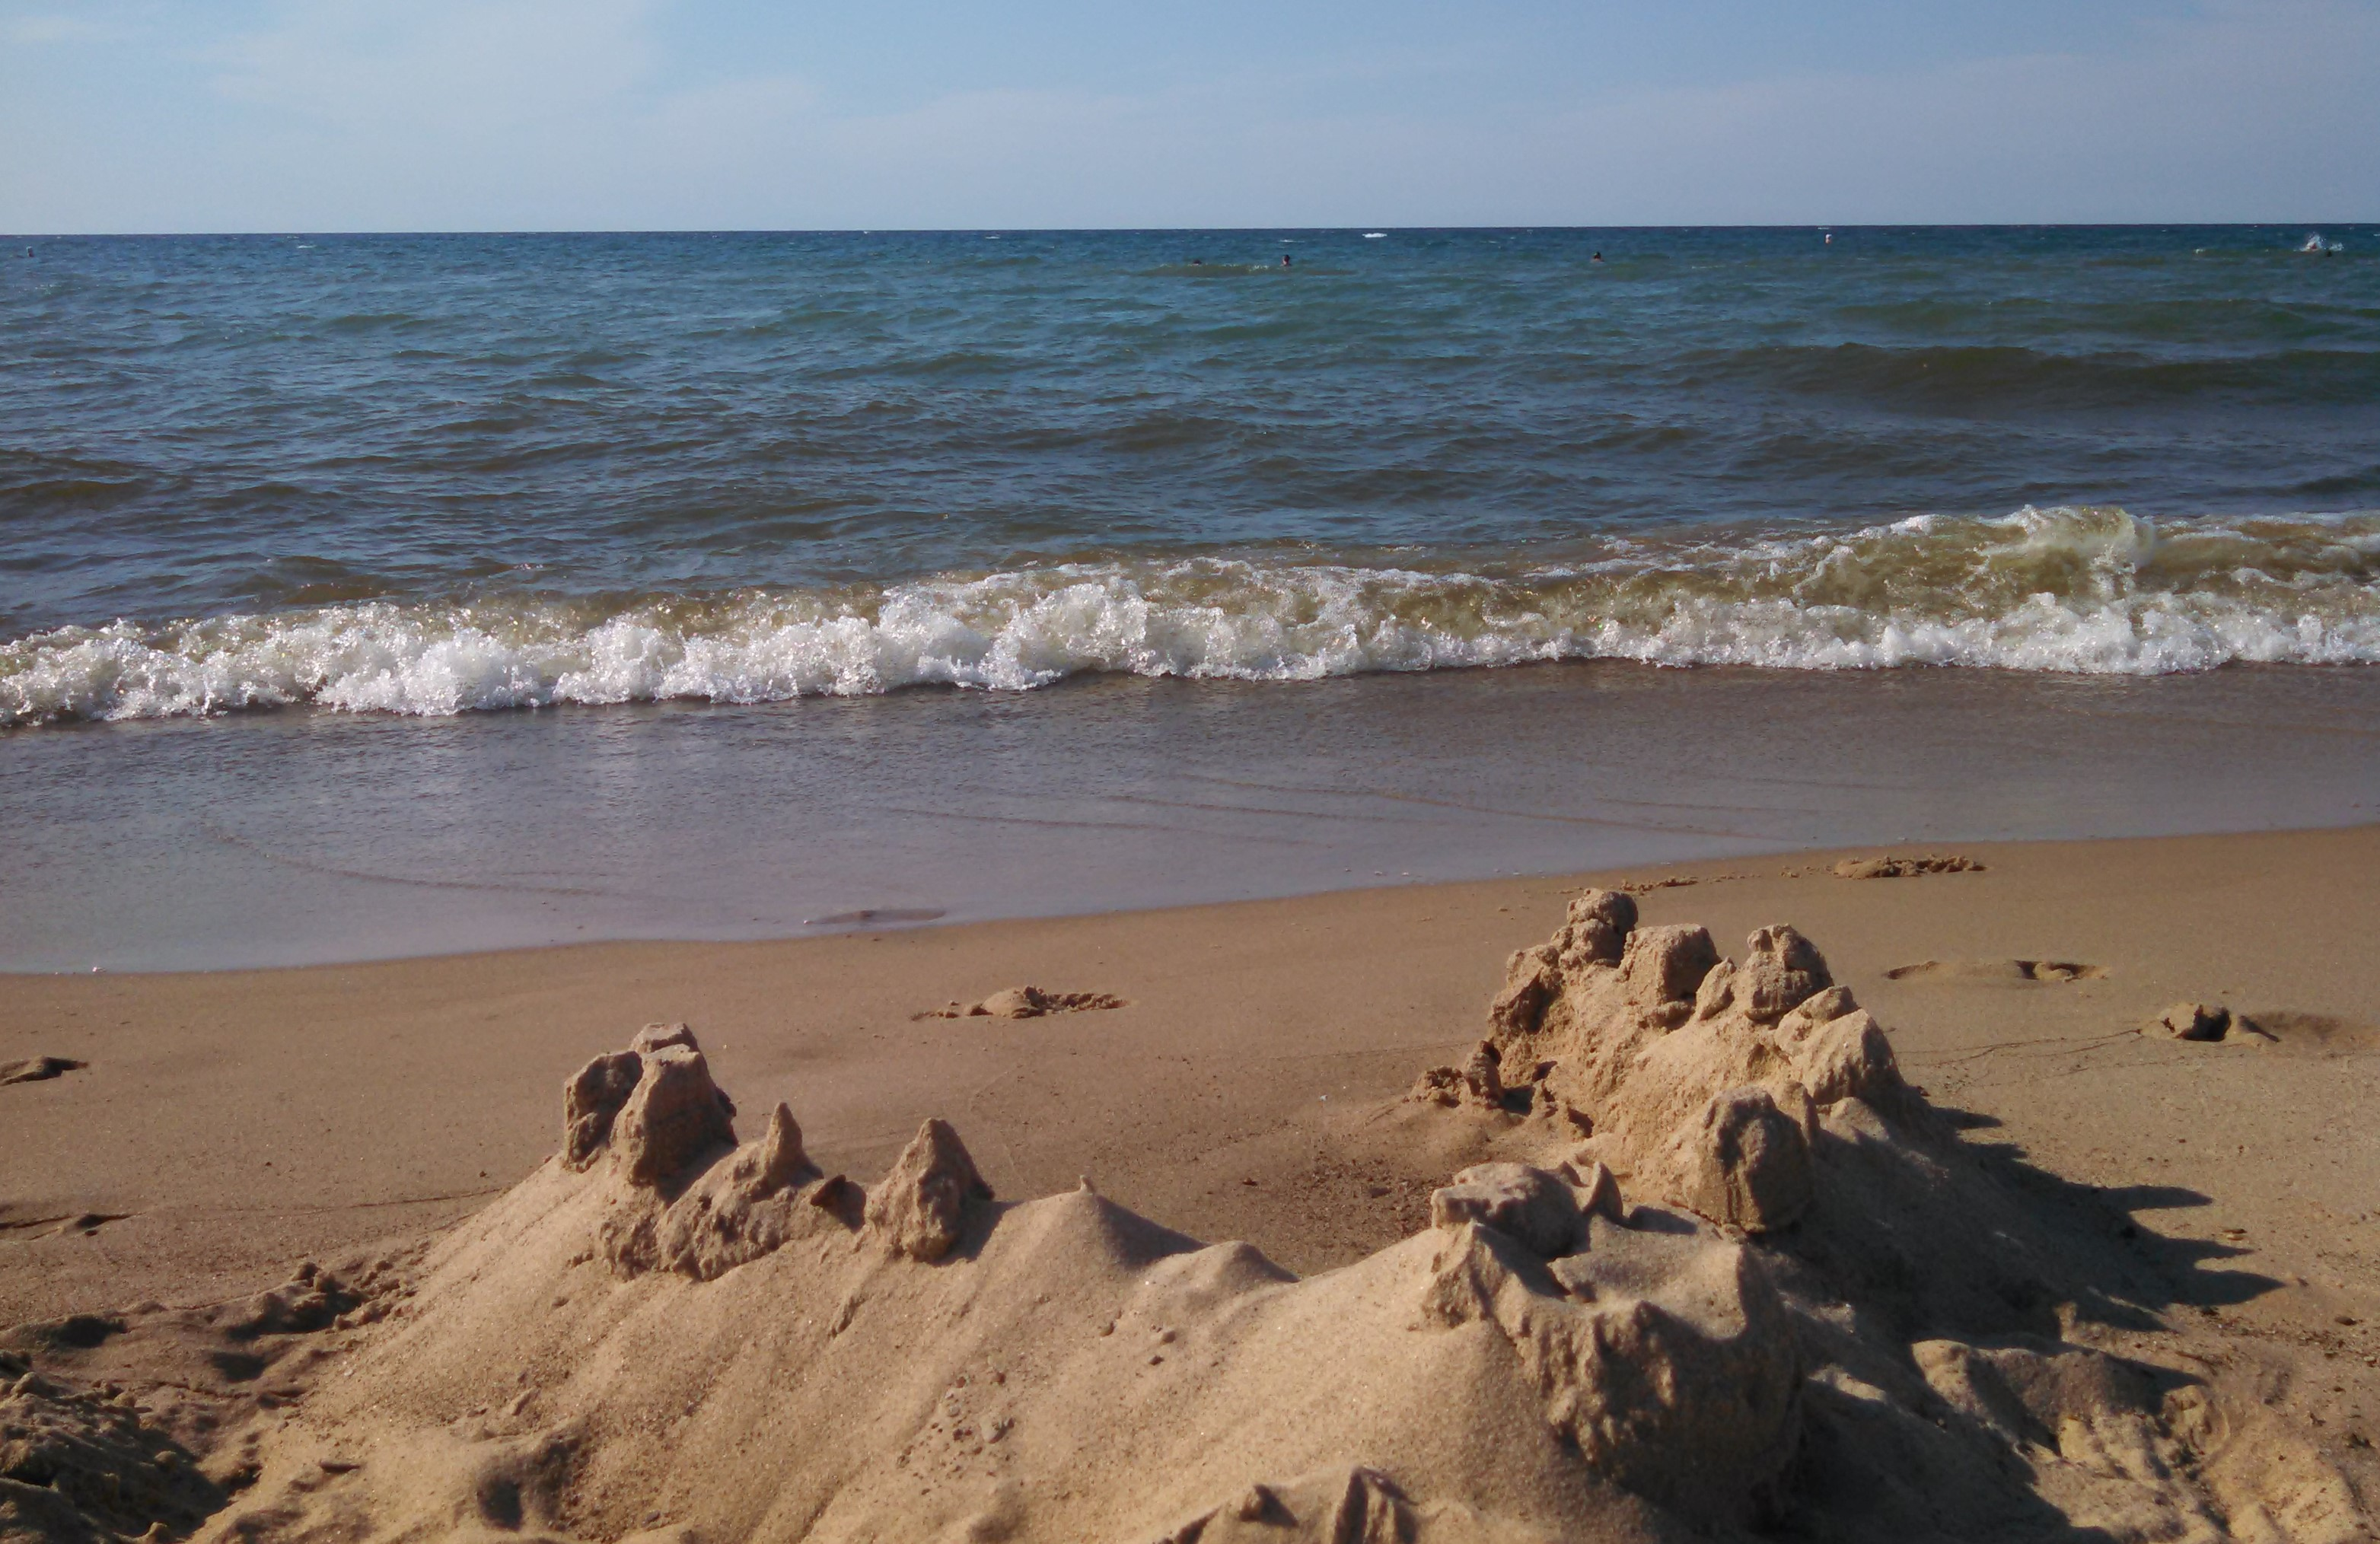 Parts of Indiana Dunes were shut down Aug. 15, 2019 for a chemical spill in the water.